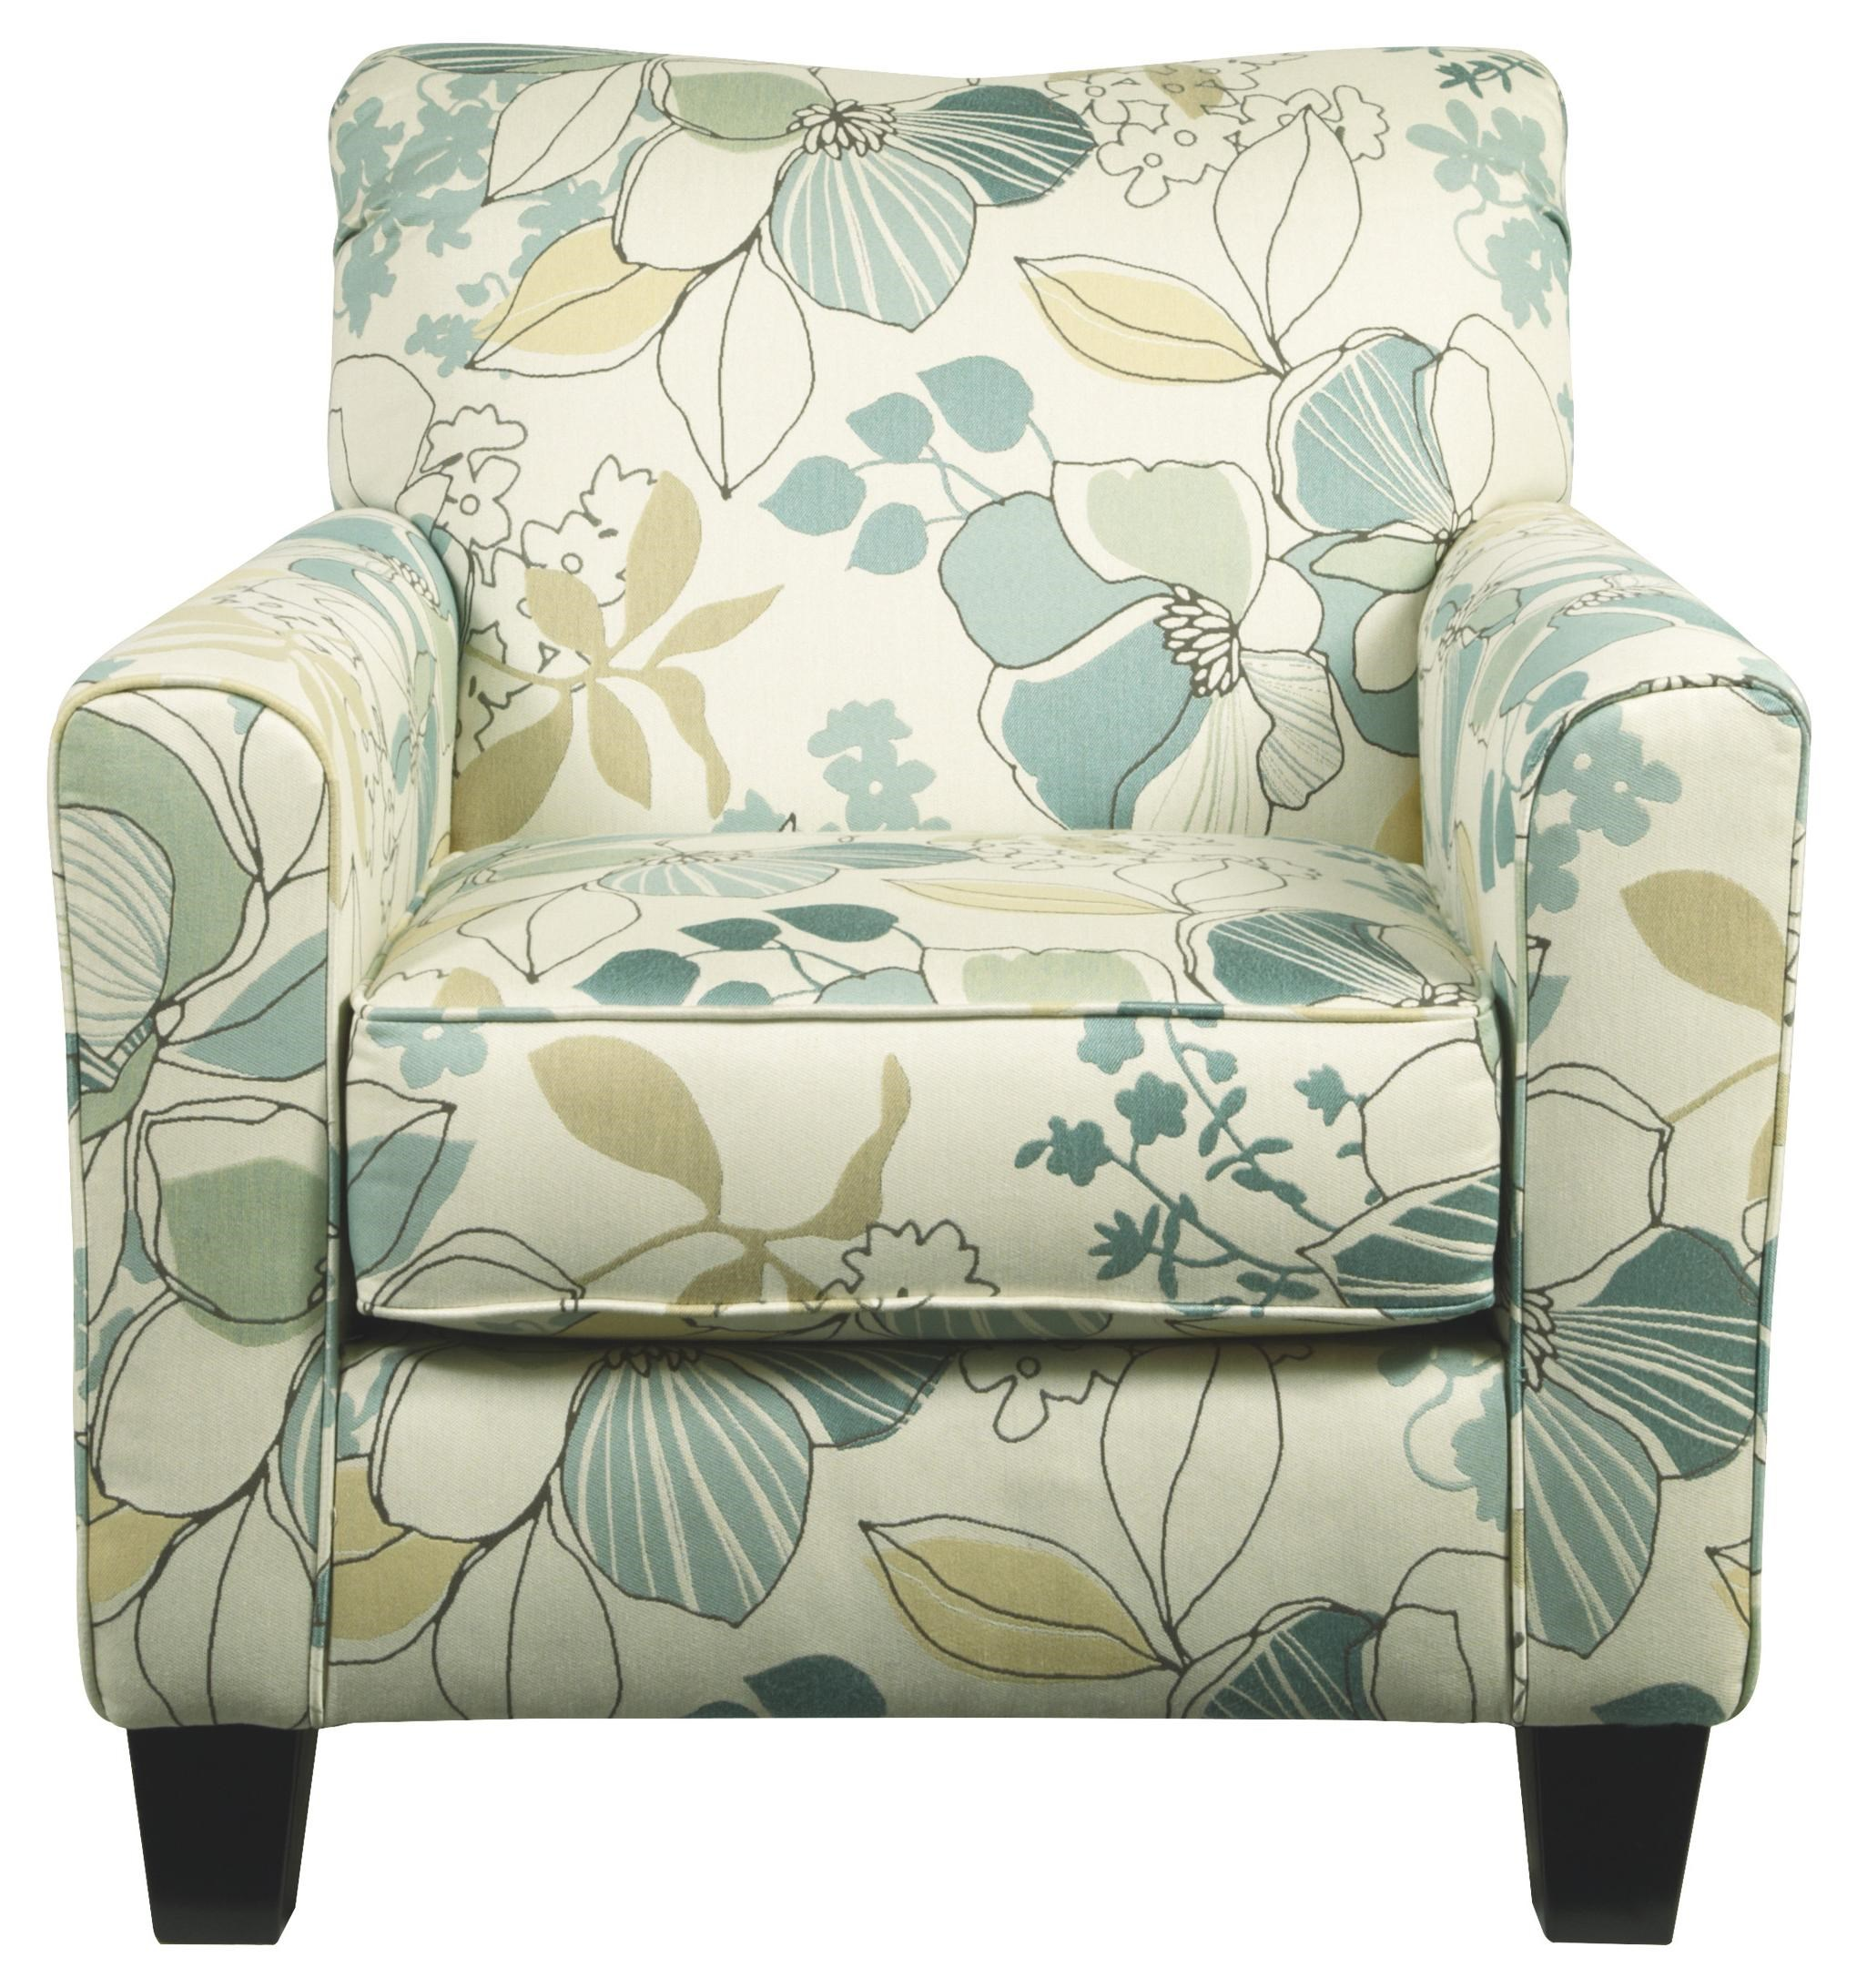 Signature Design By Ashley Daystar   Seafoam Contemporary Accent Chair With Floral  Fabric